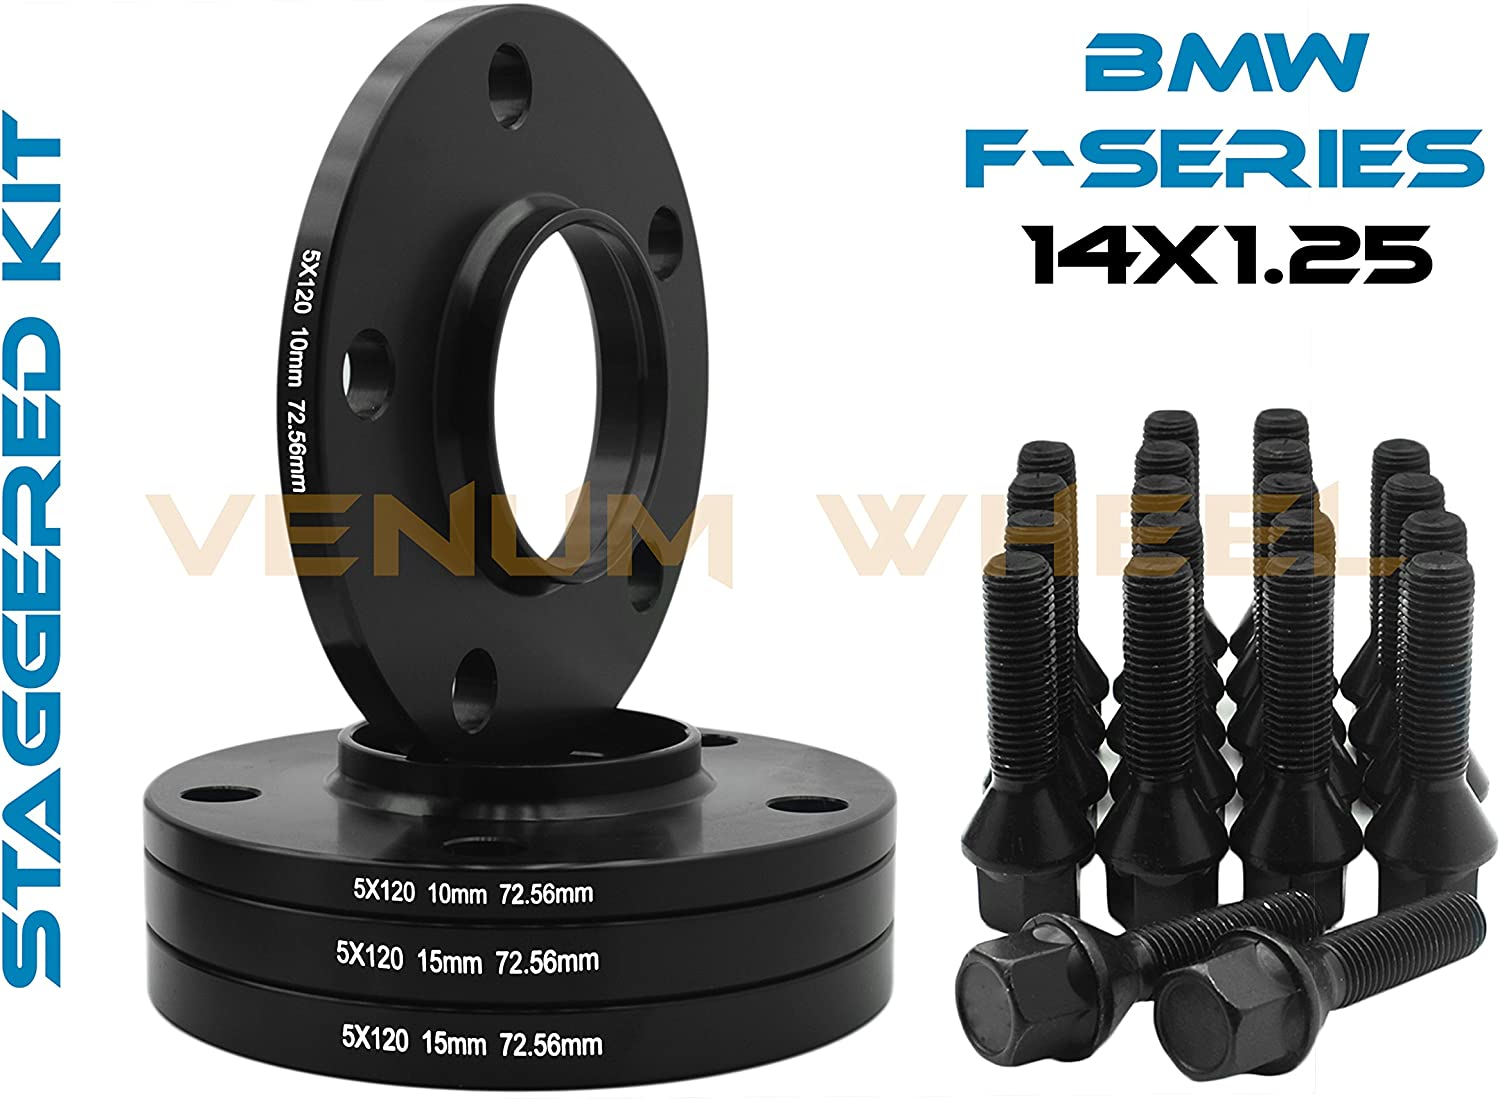 10MM FLAT WHEEL SPACERS FOR BMW VEHICLES 5X112 CENTER BORE 66.5 BLACK ANODIZED